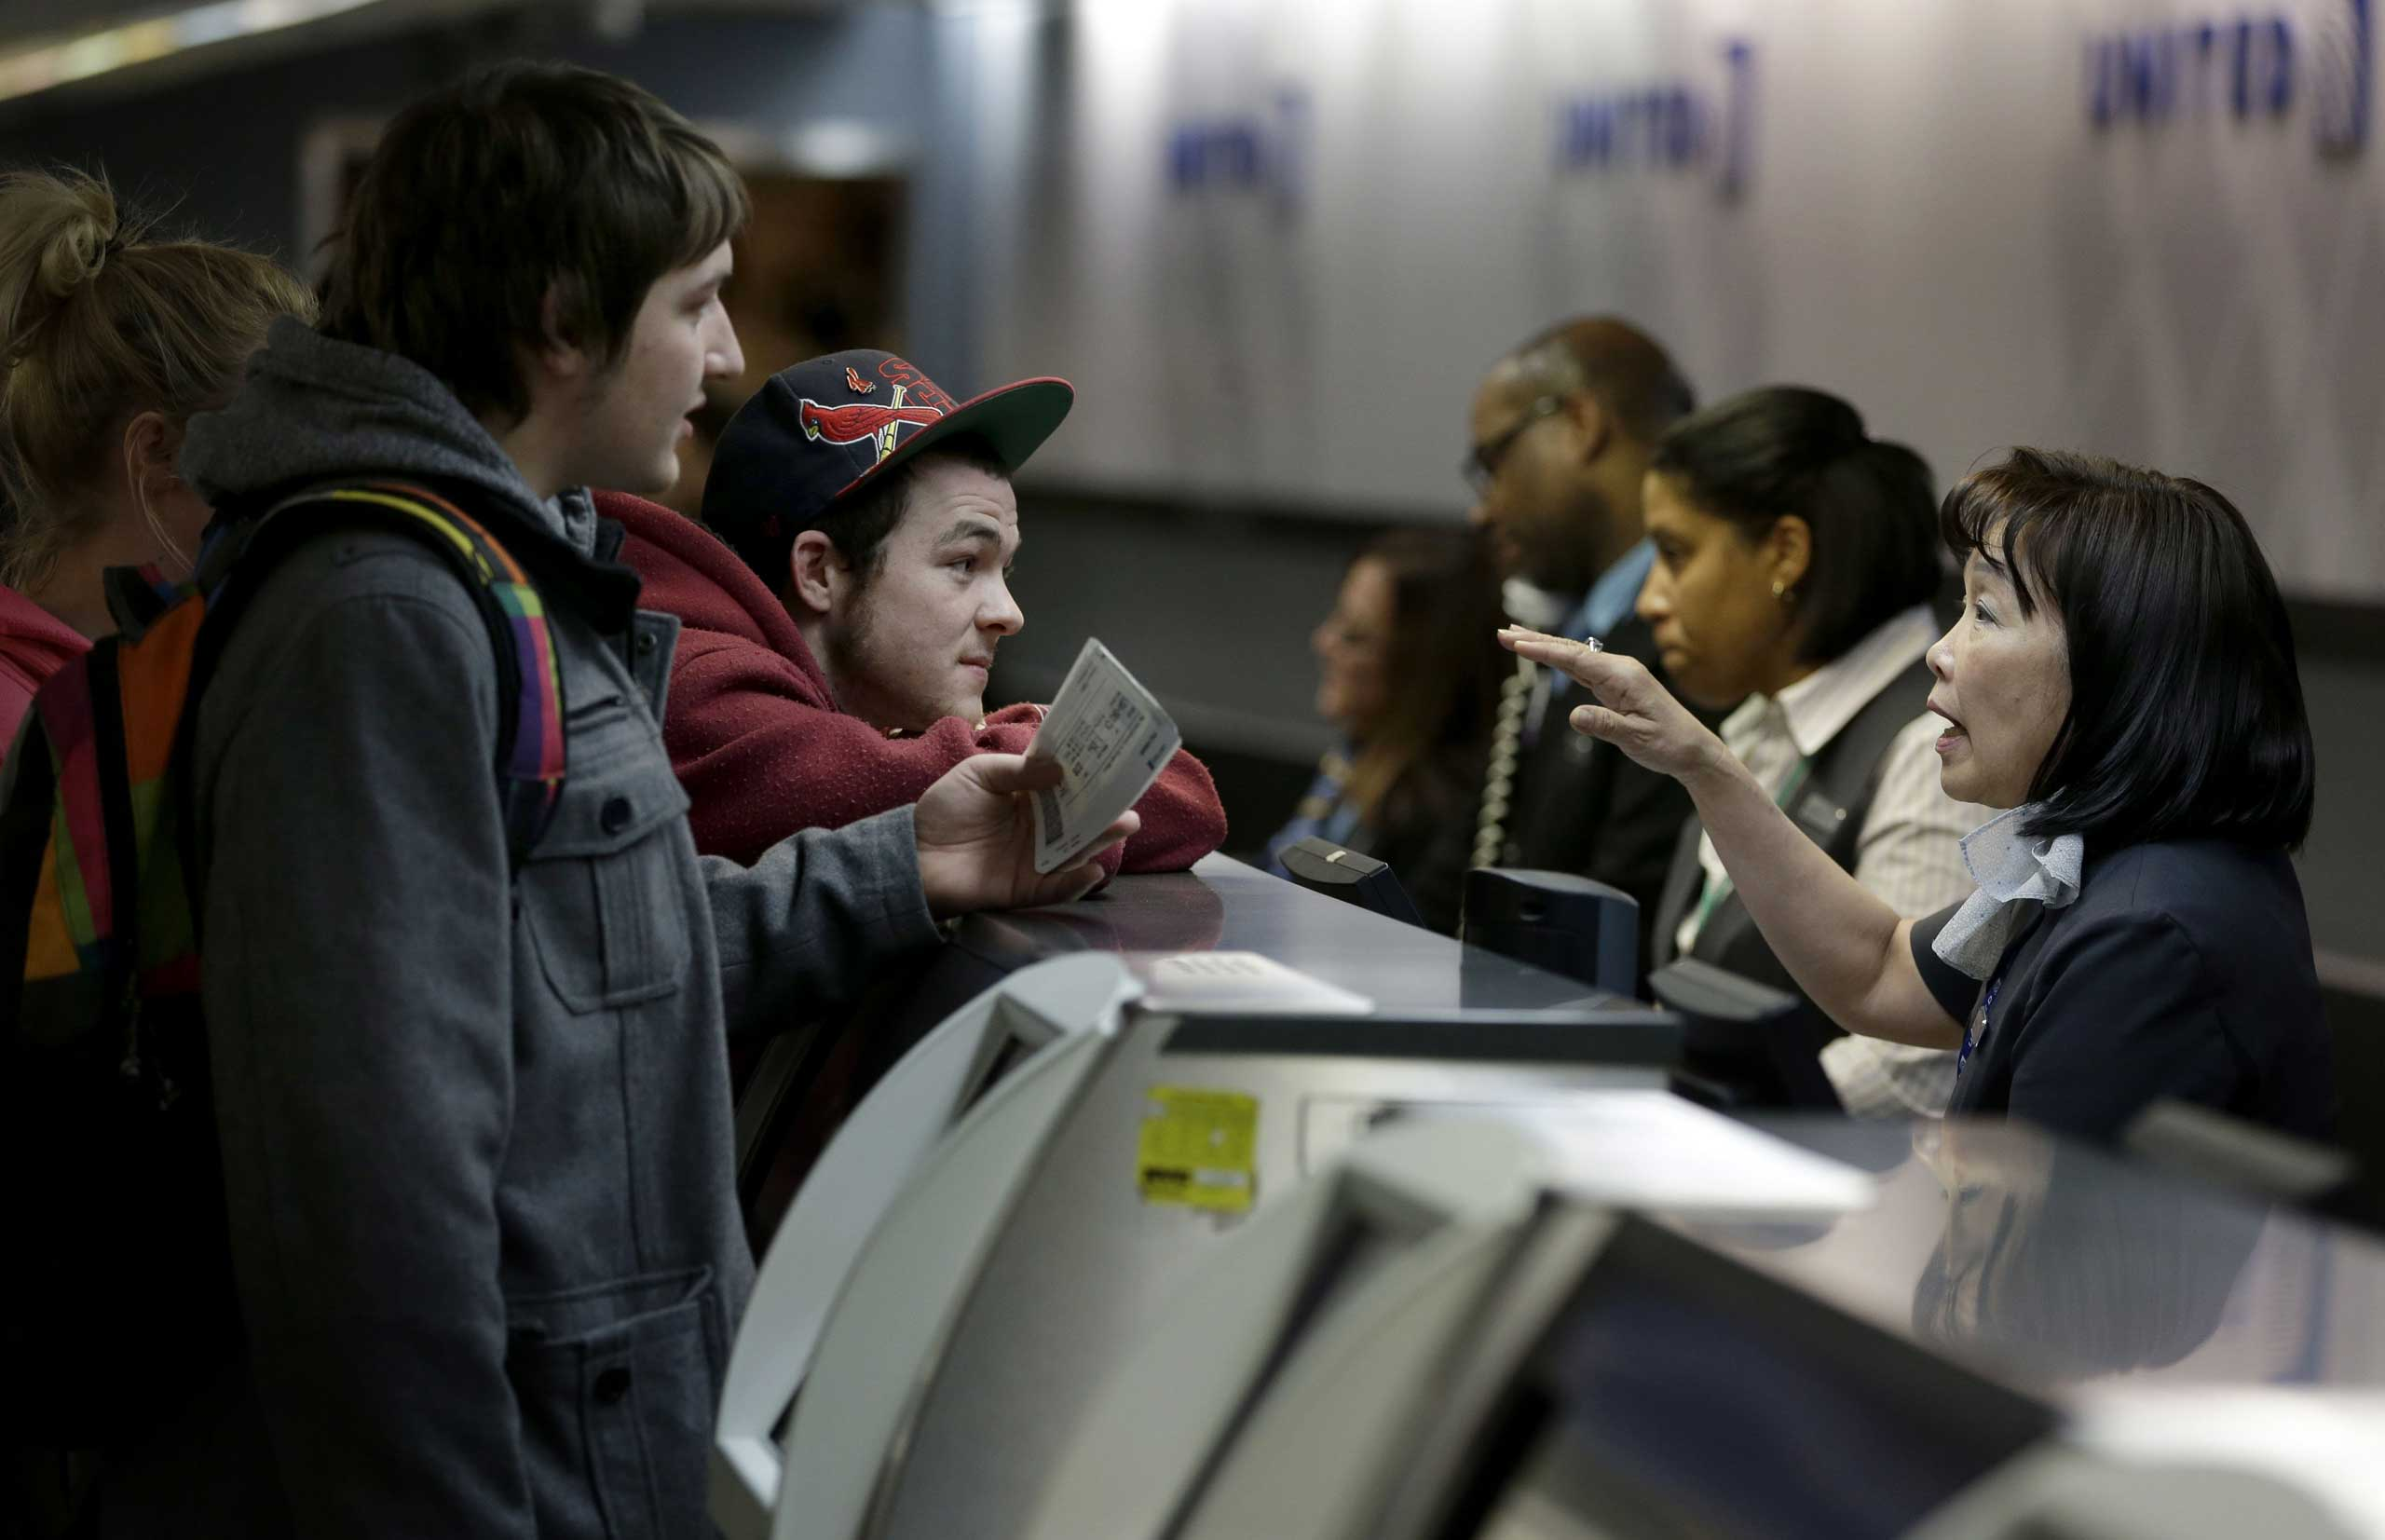 Brandon Bybee, left, and Cory McKenrick, second from left, talk with a ticket agent to try and move up their flight to Illinois in order to beat an expected snow storm at LaGuardia Airport in New York City on Jan. 26, 2015.